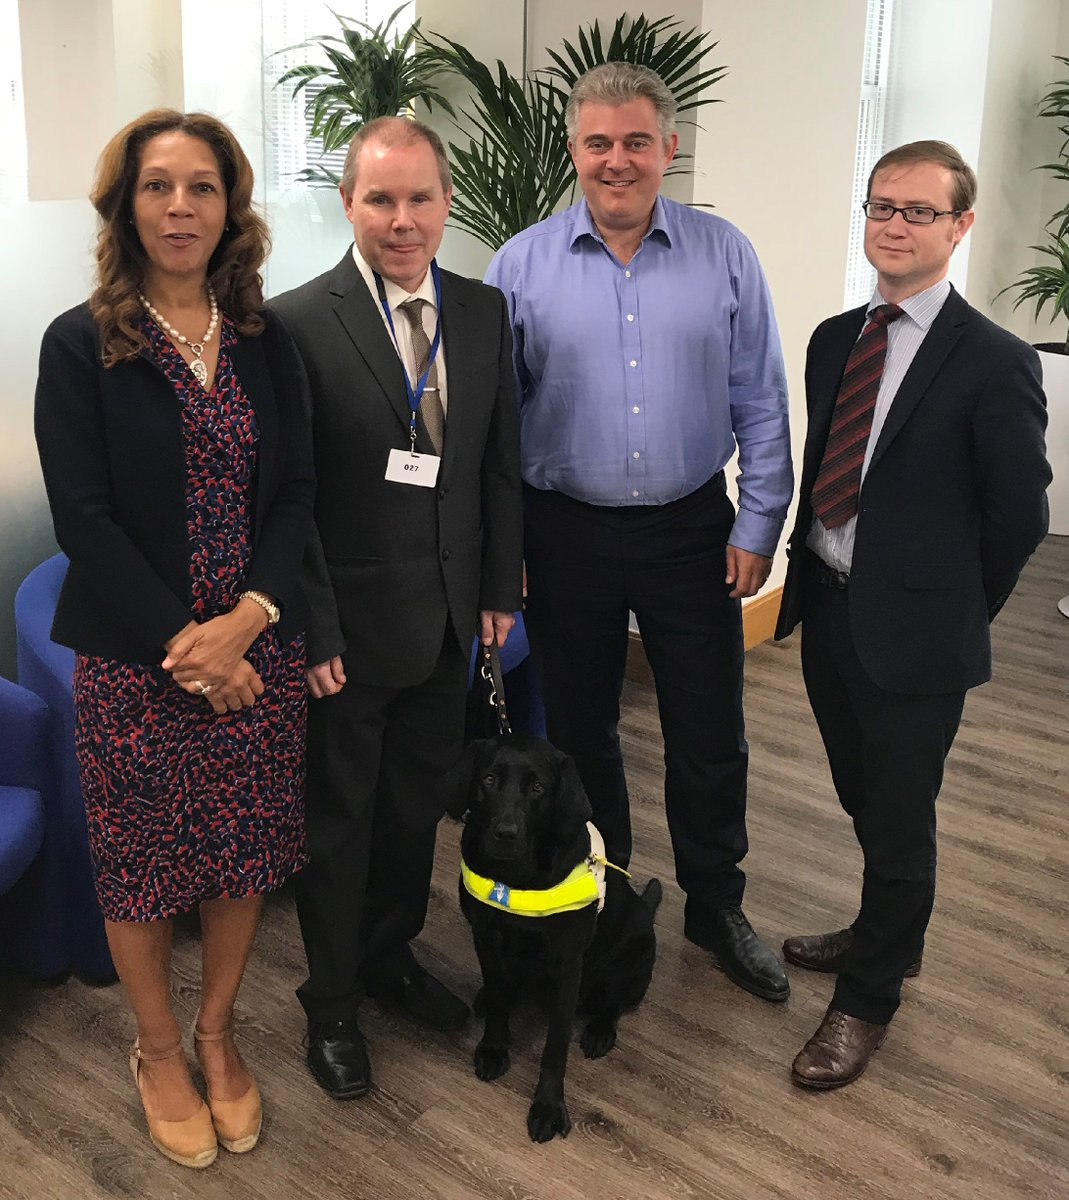 Very positive meeting earlier today at CCHQ with @Conservatives Party Chairman @BrandonLewis and Vice-Chair @HelenGrantMP with CDG Chairman @HandMadePeter and Deputy Chairman Barry Ginley to discuss our exciting plans for the year ahead! #inclusion #accessibility Thanks @Myles3D<br>http://pic.twitter.com/6vVeNwoC6J